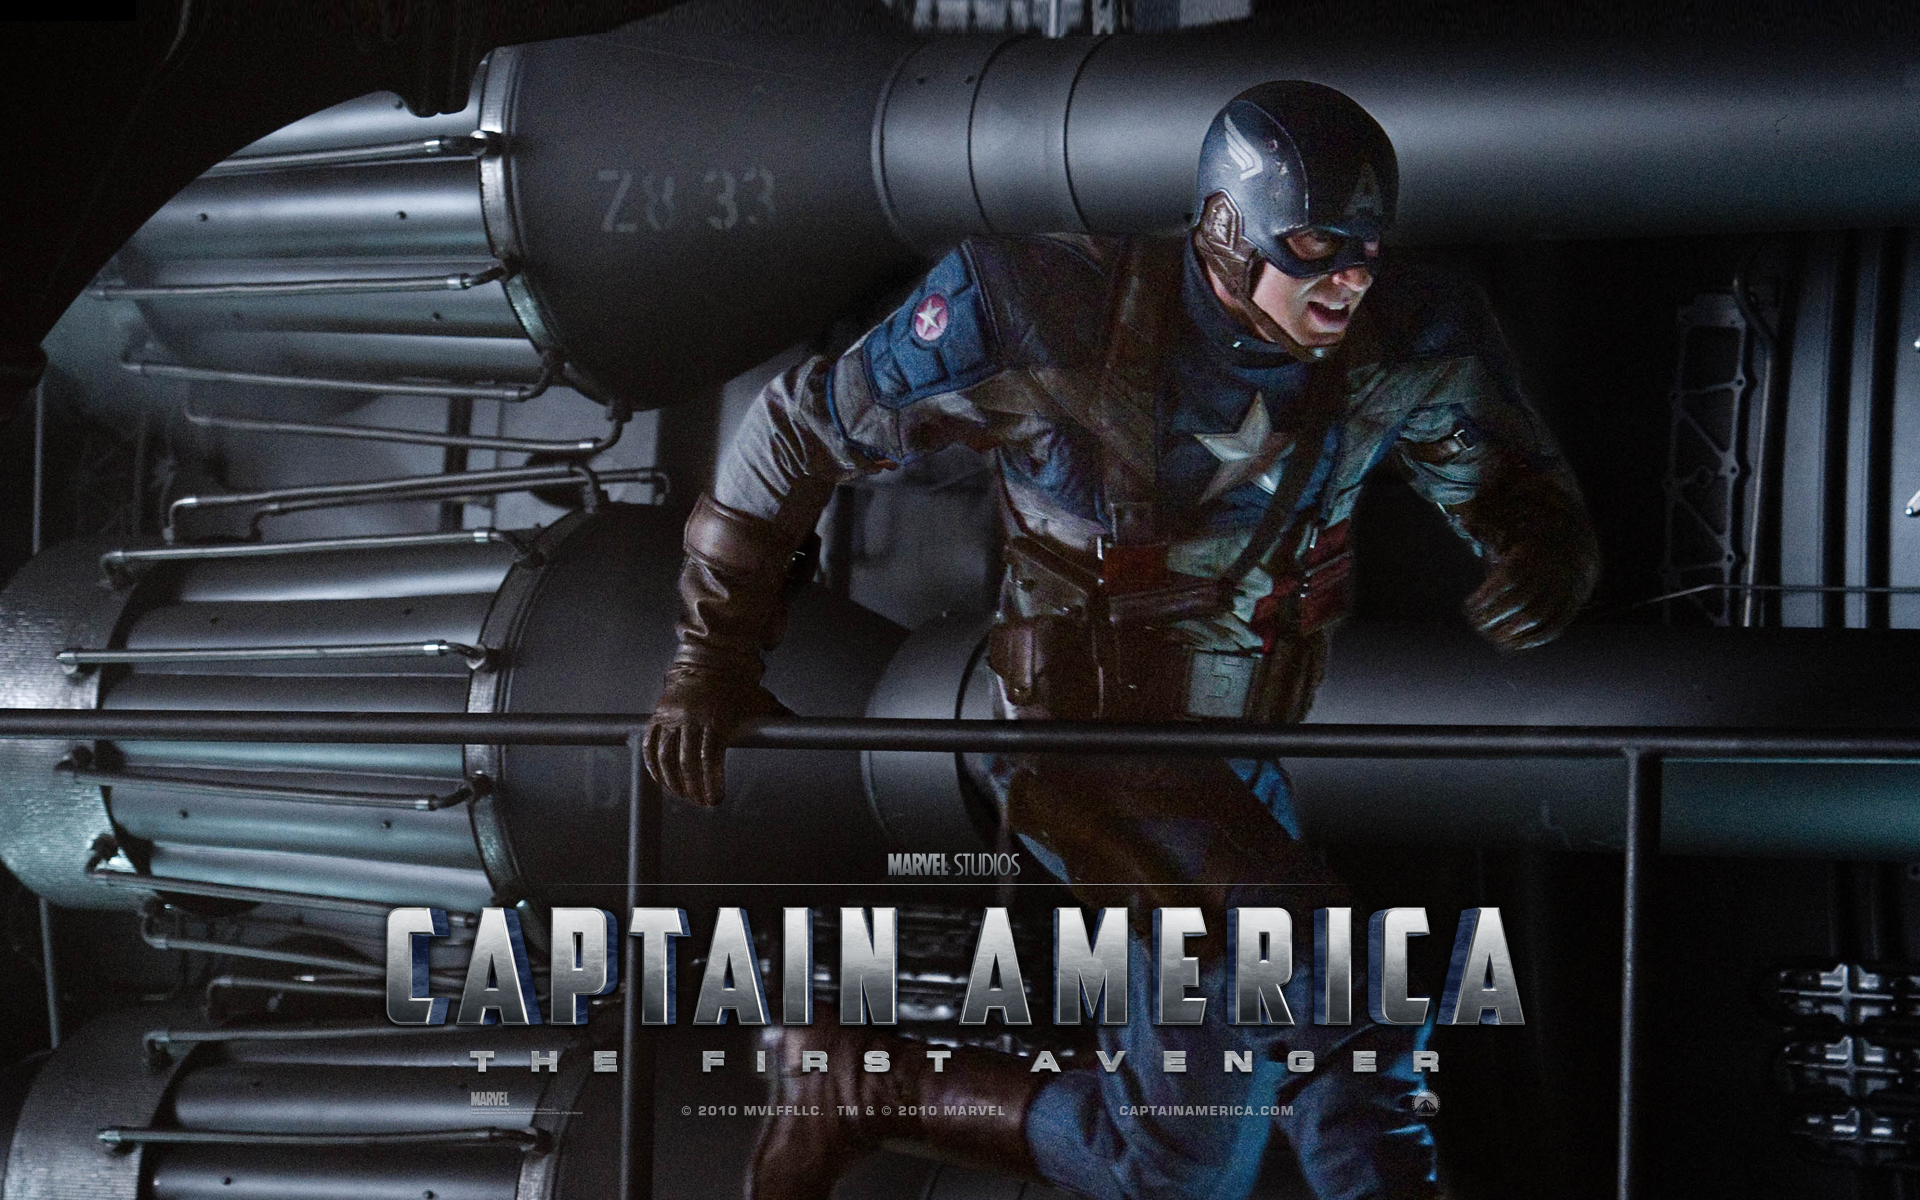 Epic Movie Hd Wallpapers Captain America Wallpapers With Chris Evans 1920x1200 Hd